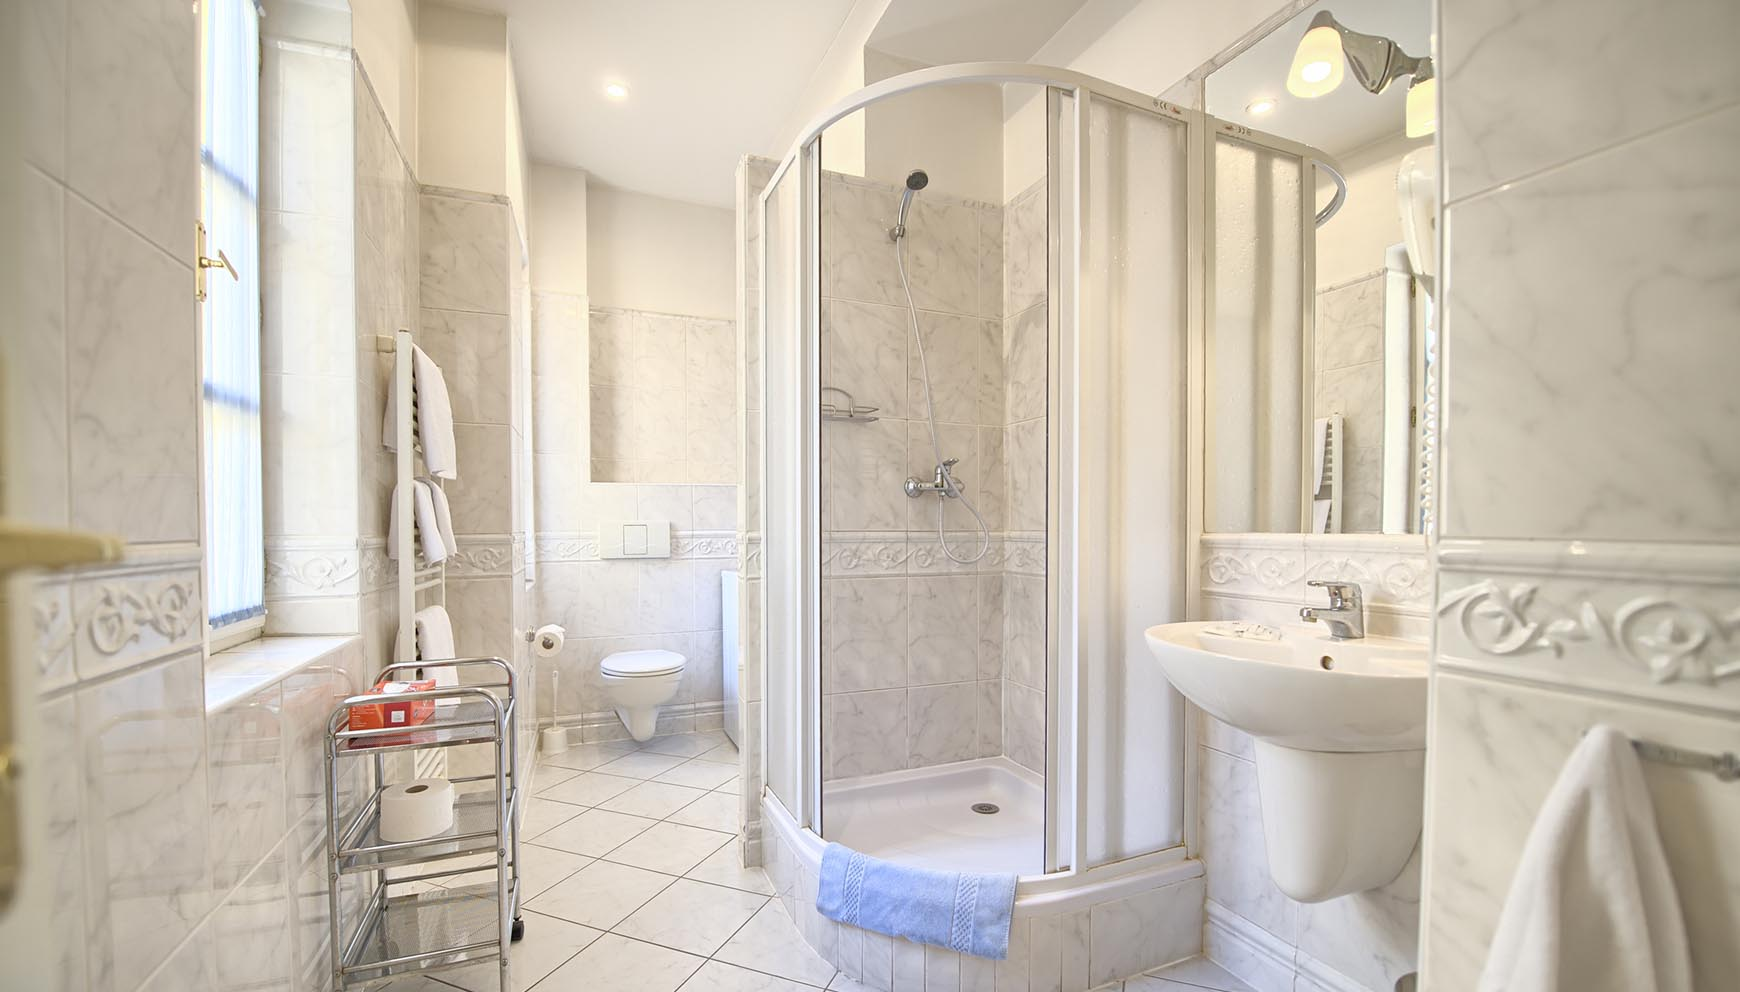 Residence Masna studio apartment type 1 bathroom